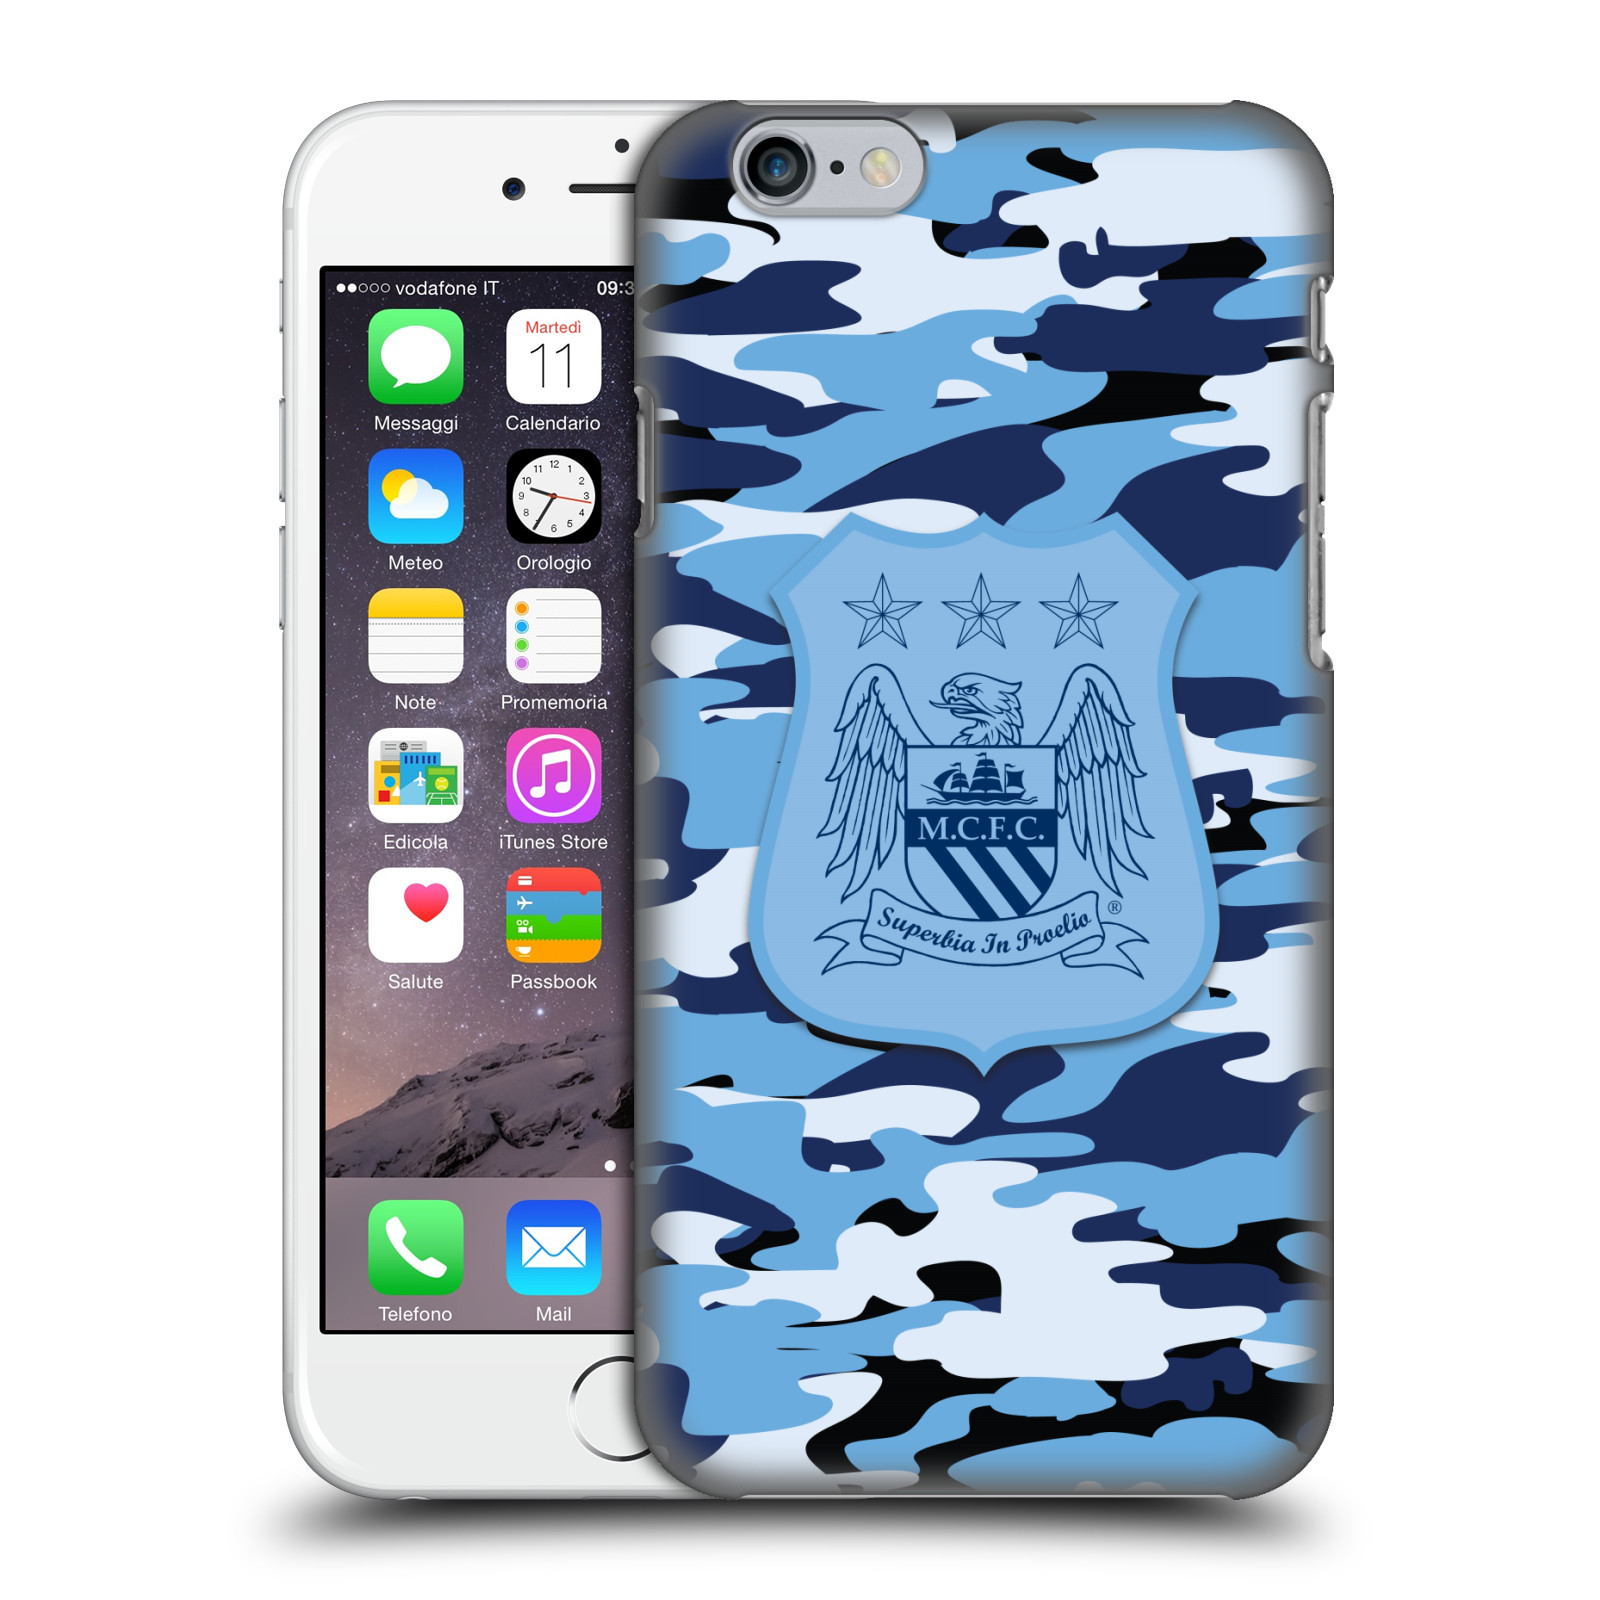 Manchester City FC MCFC Camou-City Colourways One colour